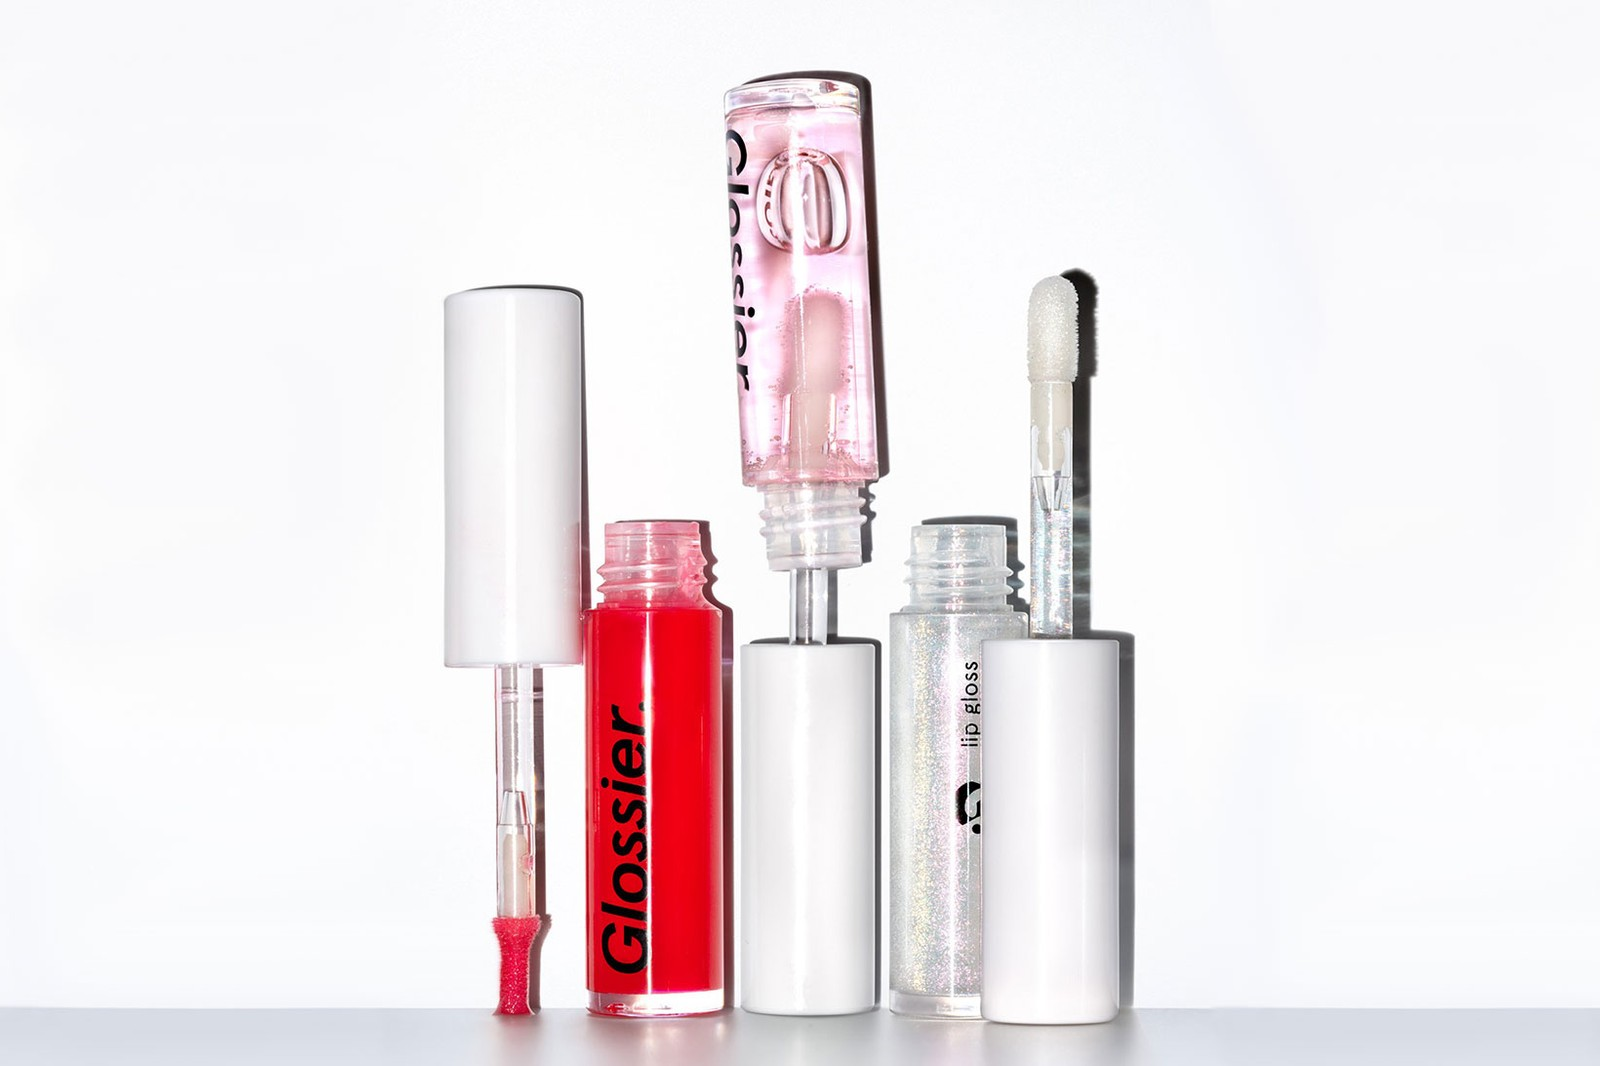 lip gloss marc jacobs glossier hourglass fenty beauty dior addict shopping guide